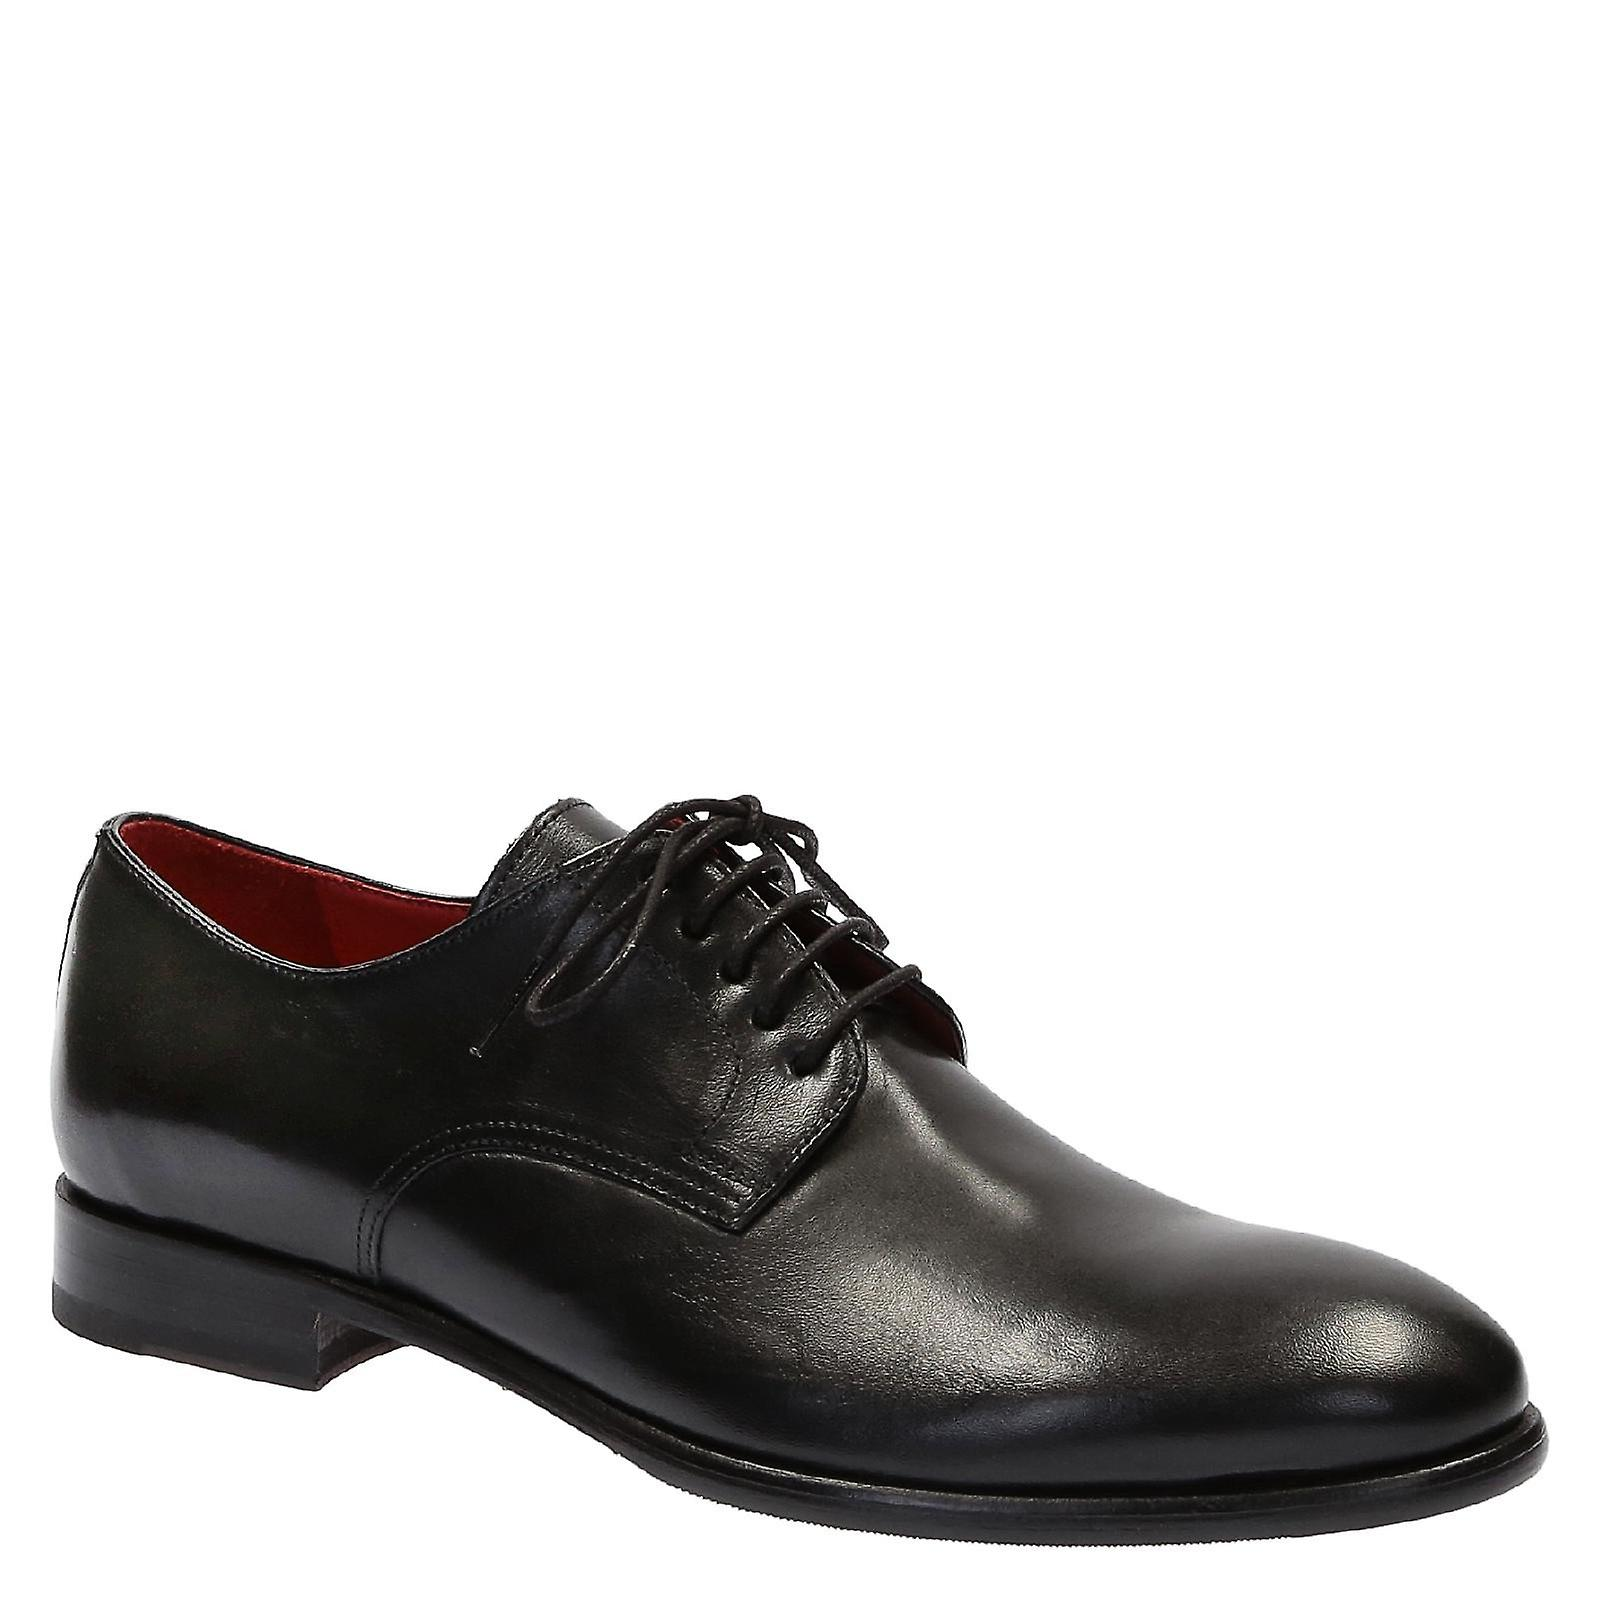 Handmade in mens italian dress shoes in Handmade shiny calf leather e21faf